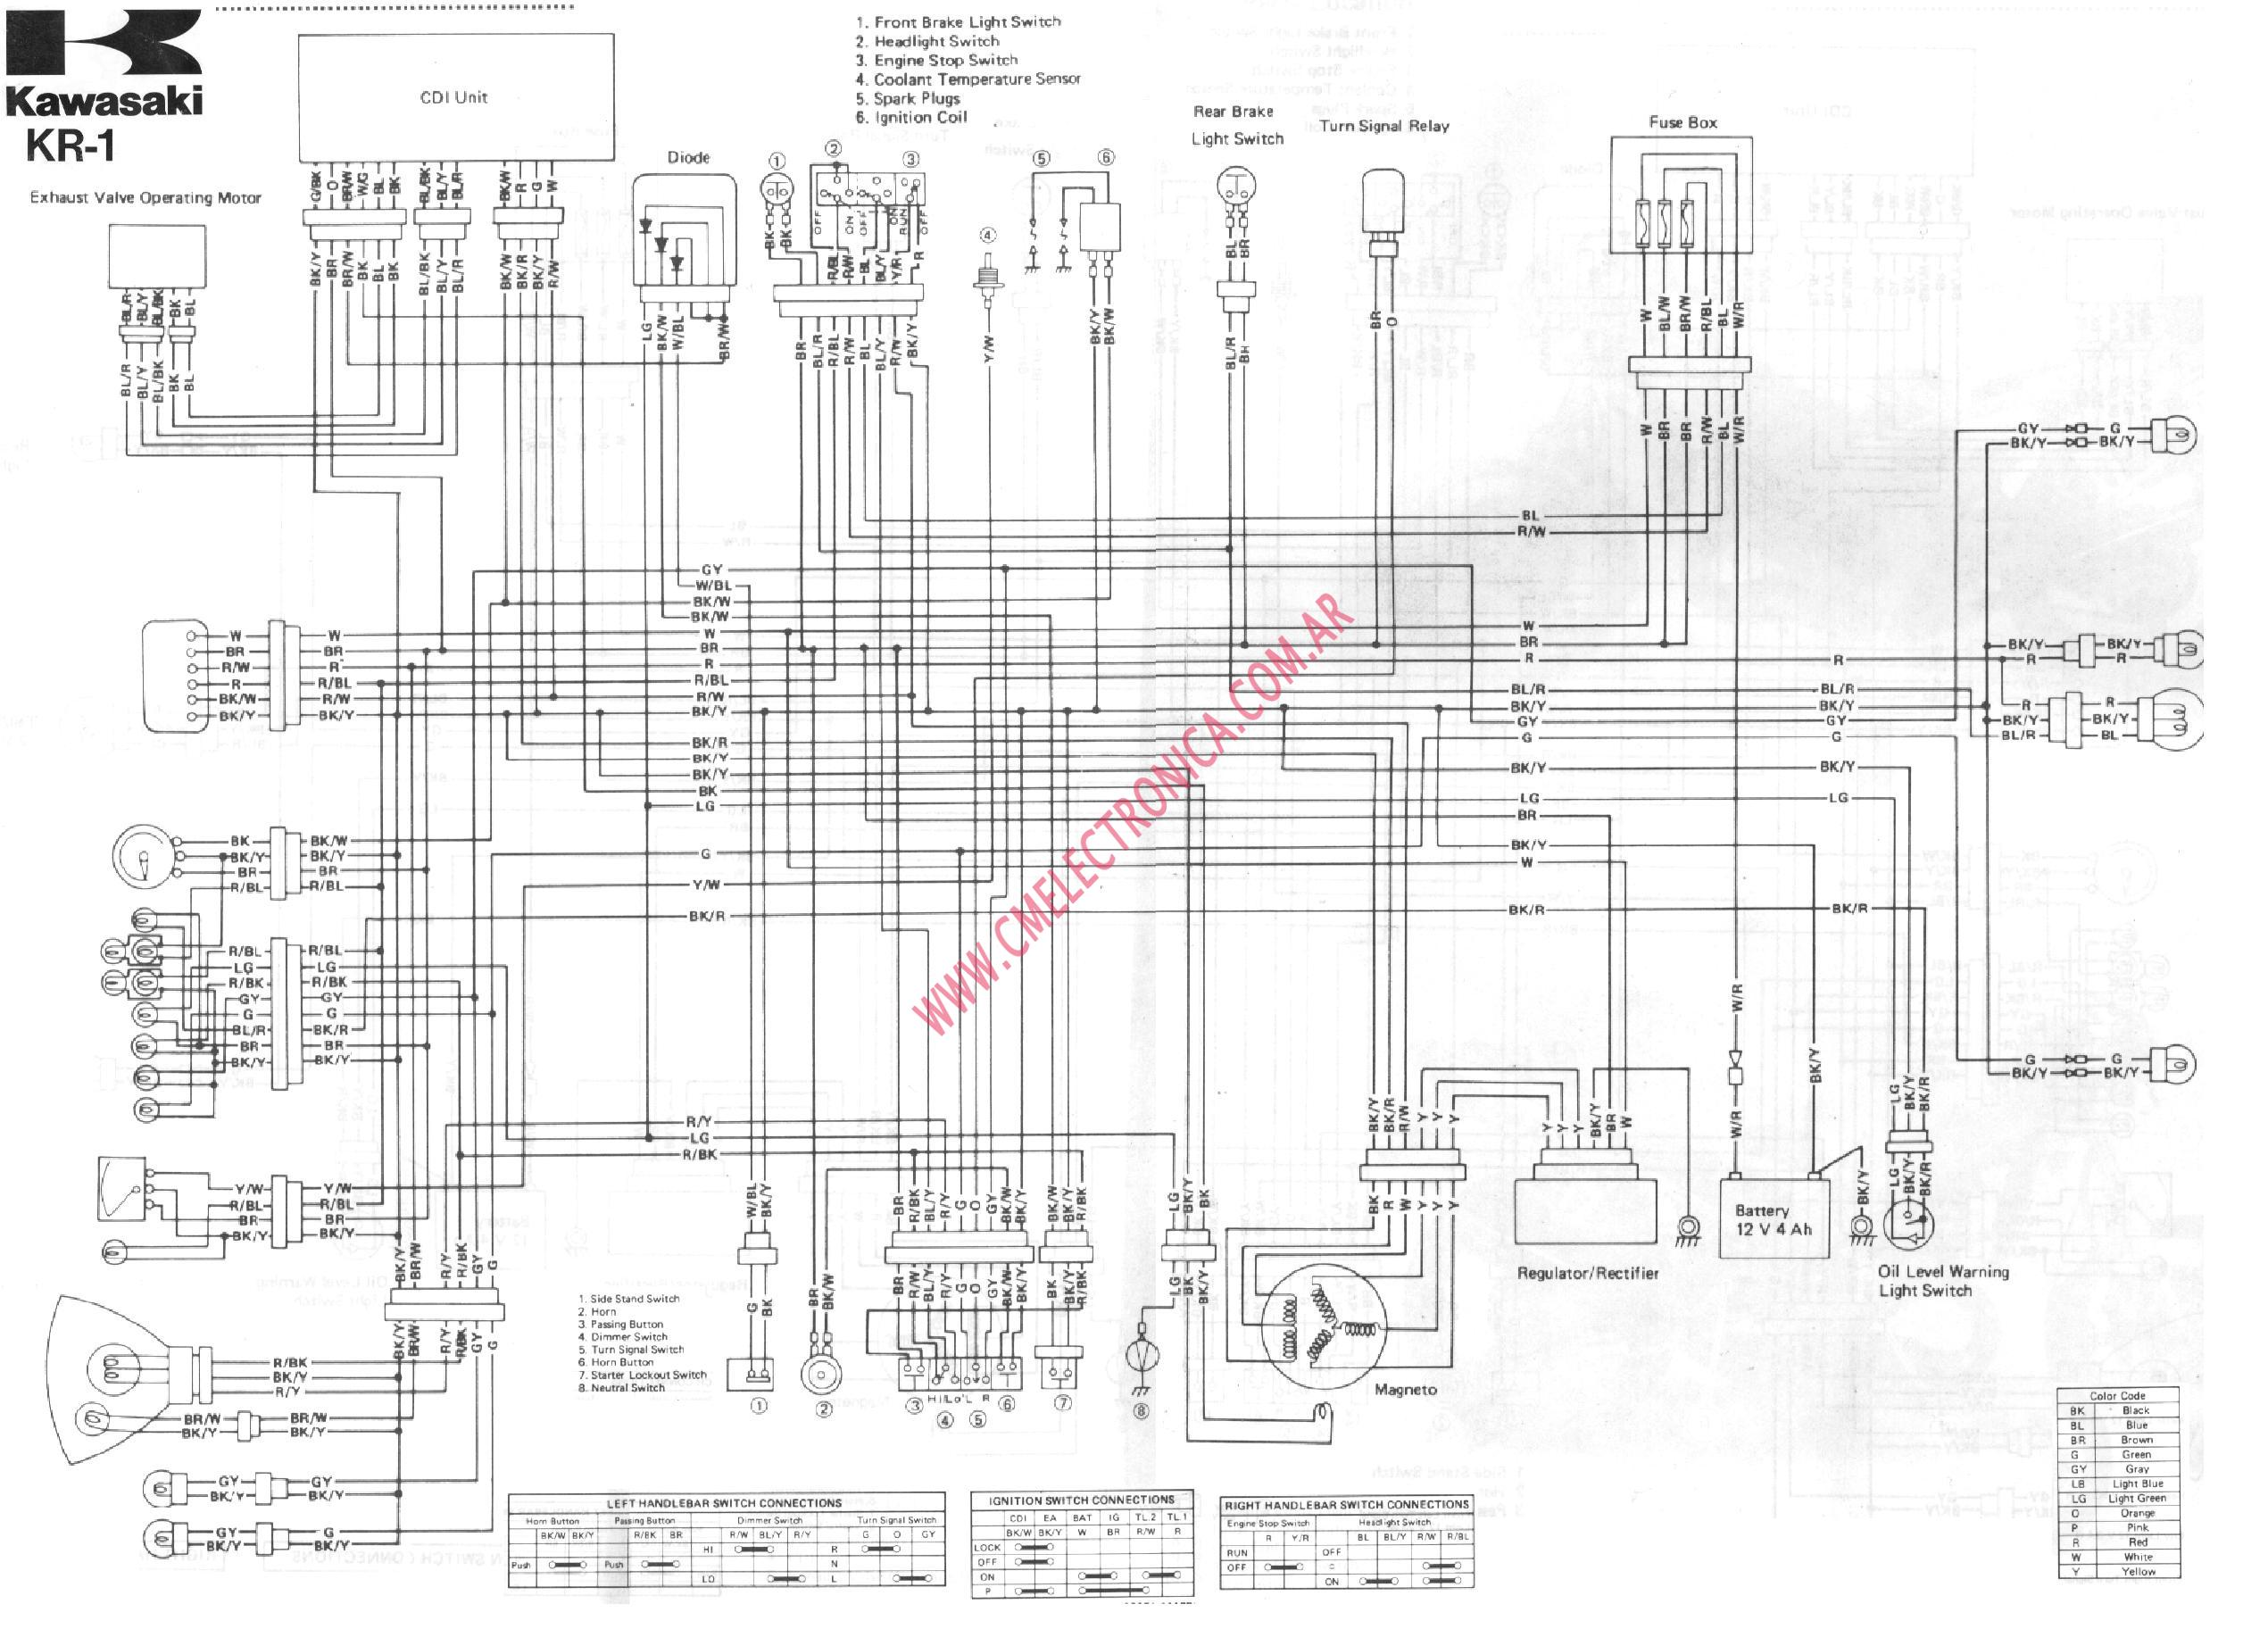 2006 Kawasaki Bayou 250 Wiring Diagram 2004 Suburban Radio Wiring Diagram Wirediagram Sampai Malam Warmi Fr